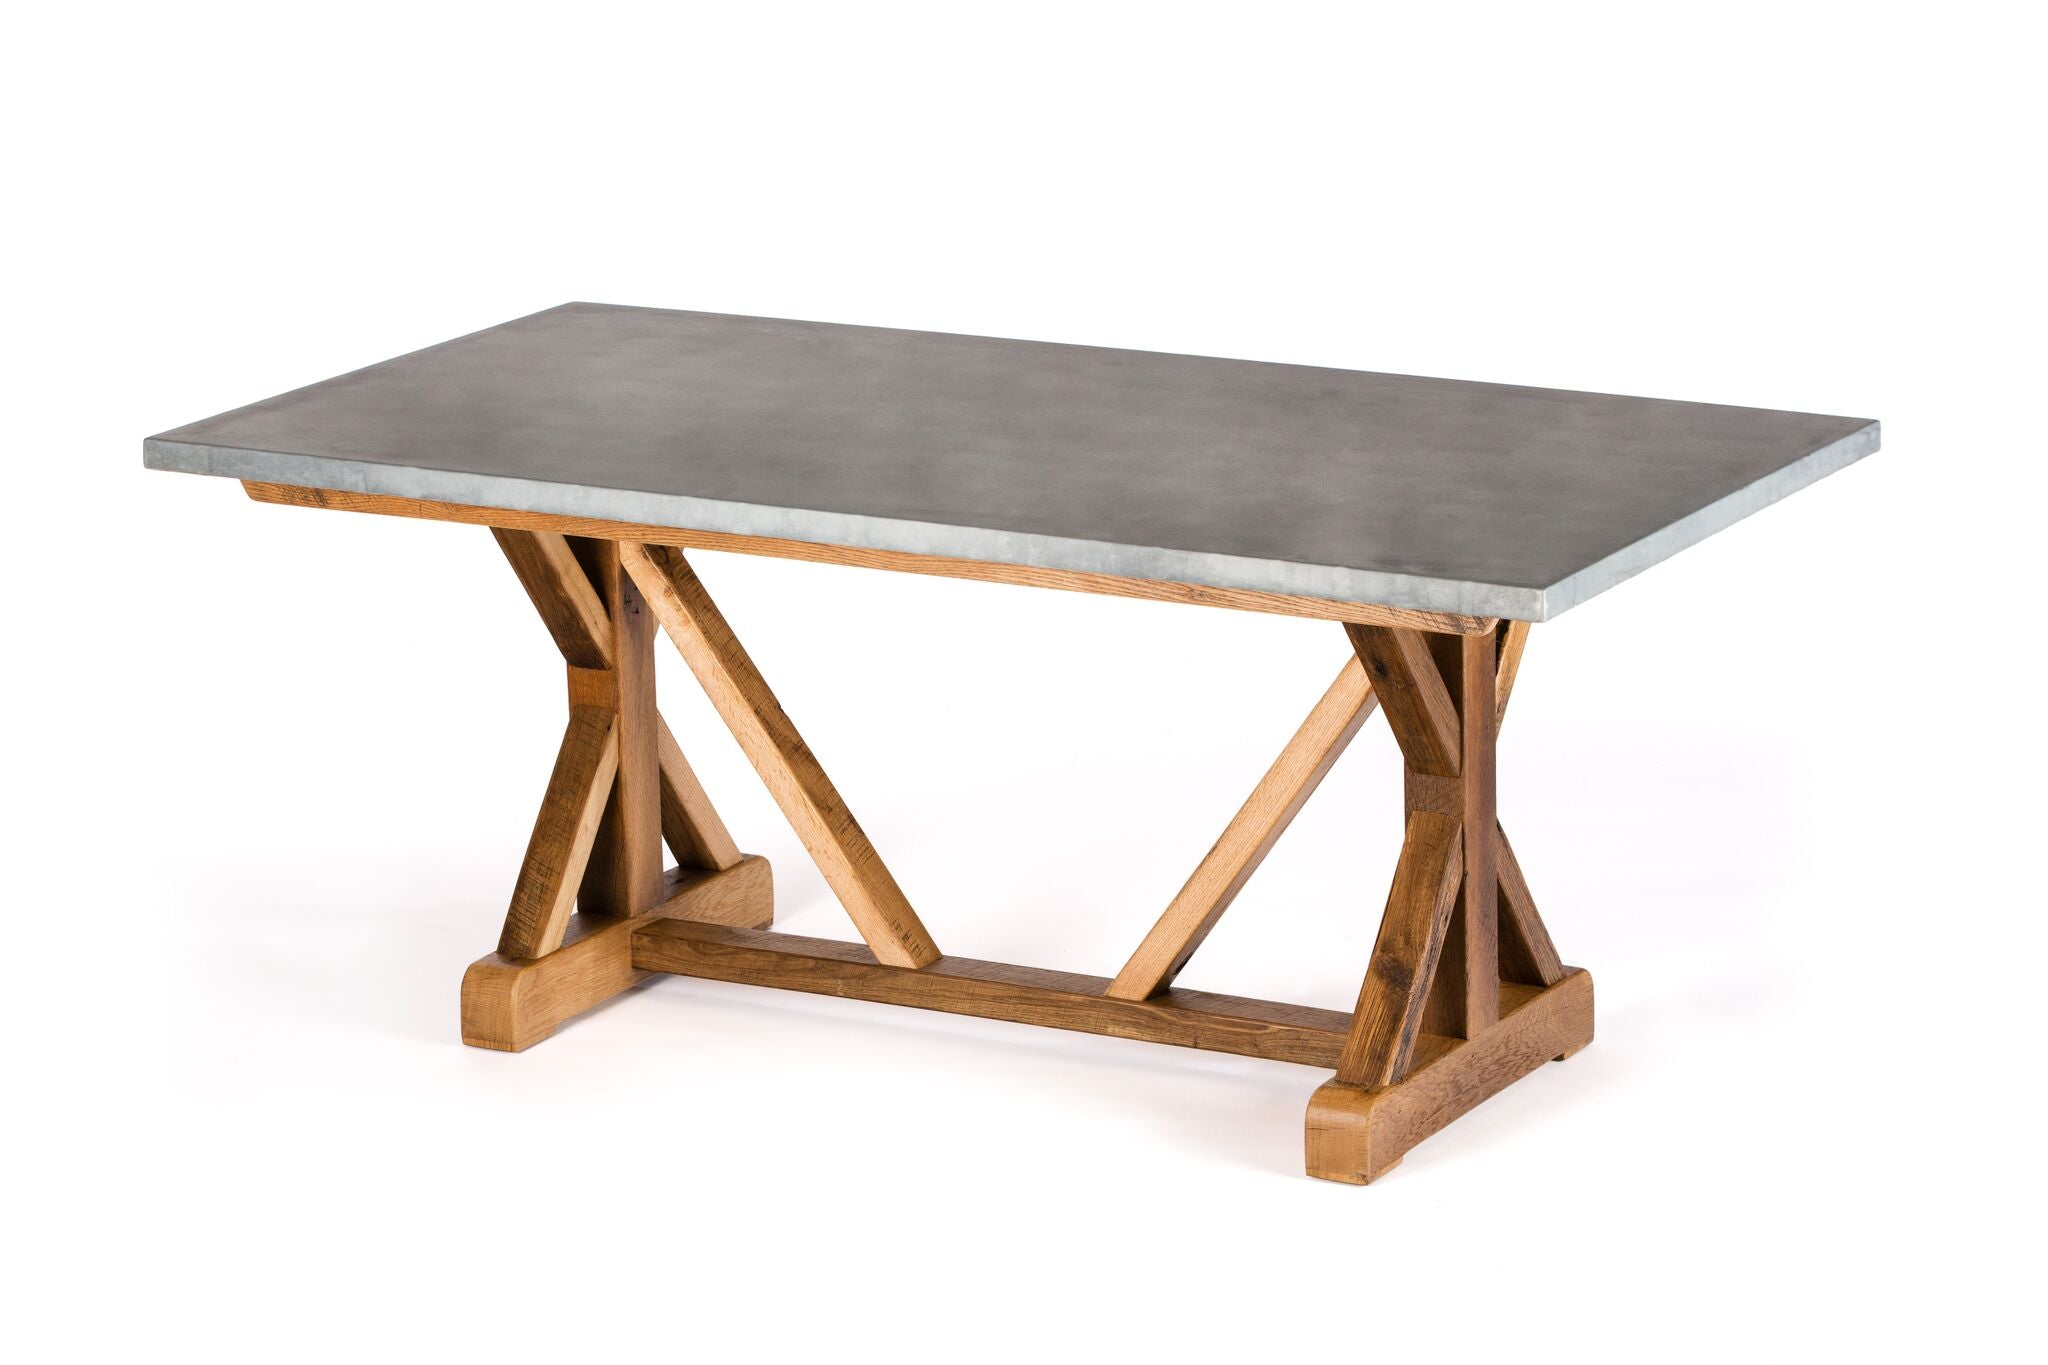 "Zinc Rectangular Table | French Trestle Table | CLASSIC | Weathered Grey on Reclaimed Oak | 96""L 39""W 30""H 